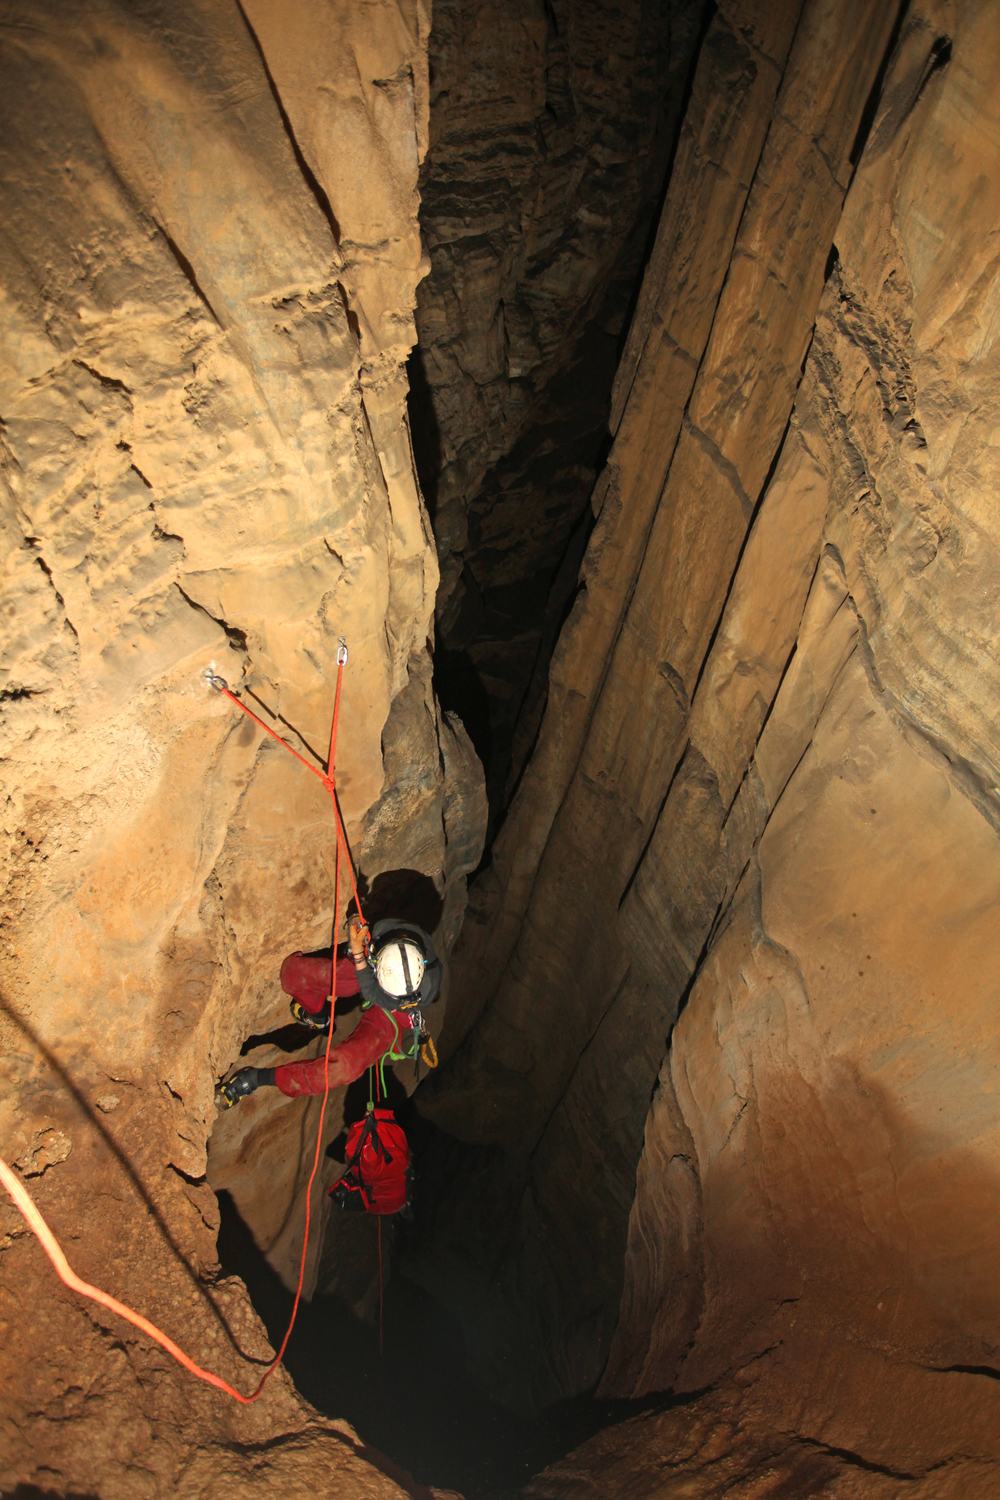 Steph Davlañtes on rope, descending the vertical chasm of the Bowl Hole.